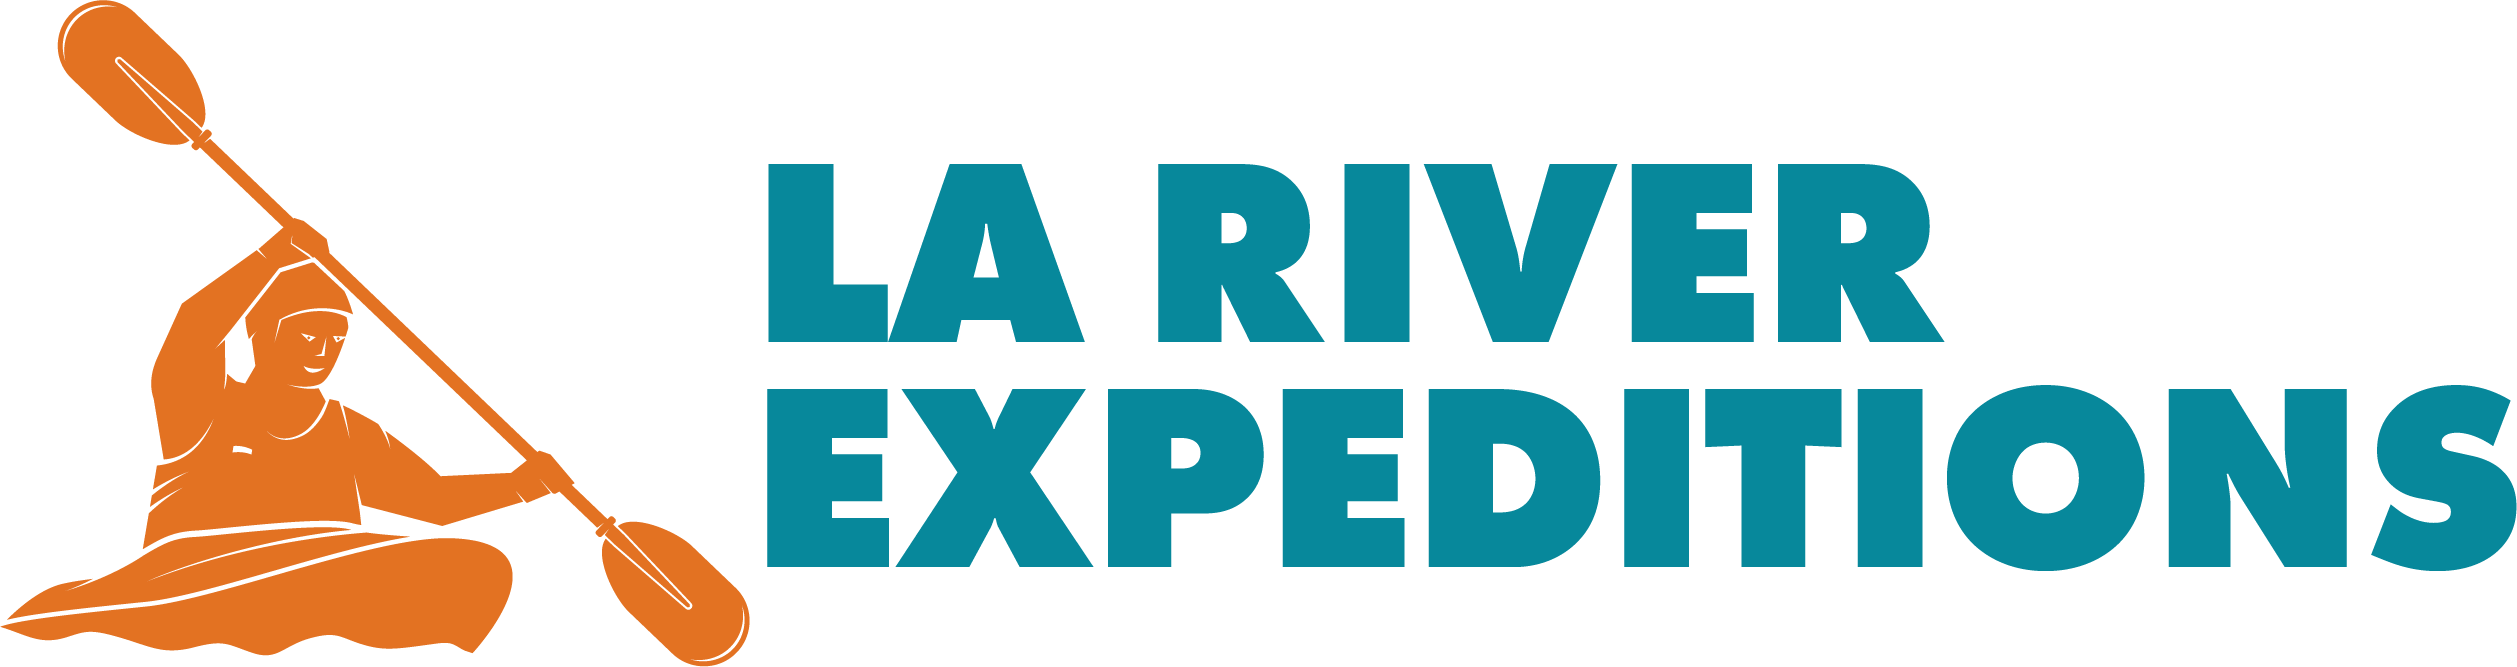 LA River Expeditions